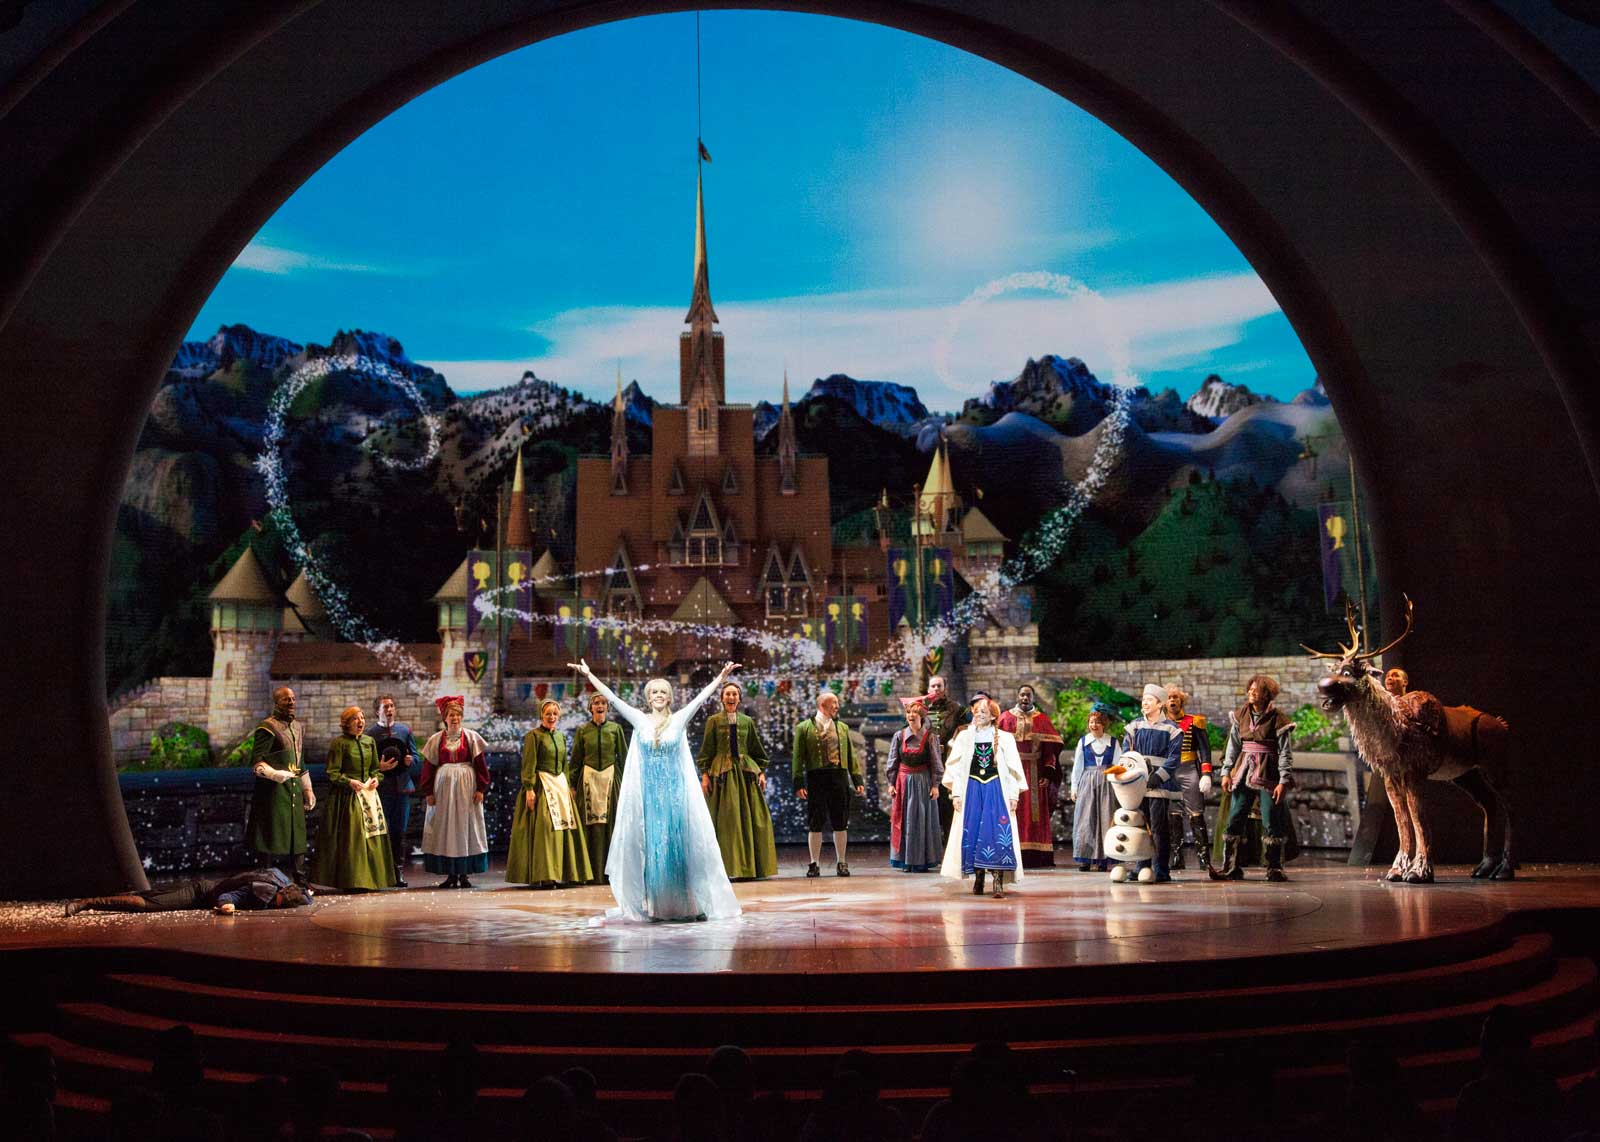 'FROZEN - LIVE AT THE HYPERION' -- A new theatrical interpretation for the stage based on Disney's animated blockbuster film, Frozen is now playing at the Hyperion Theater at Disney California Adventure Park. The show immerses audiences in the emotional journey of Anna and Elsa with all of the excitement of live theater, including elaborate costumes and sets, stunning special effects and show-stopping production numbers. (Scott Brinegar/Disneyland Resort)